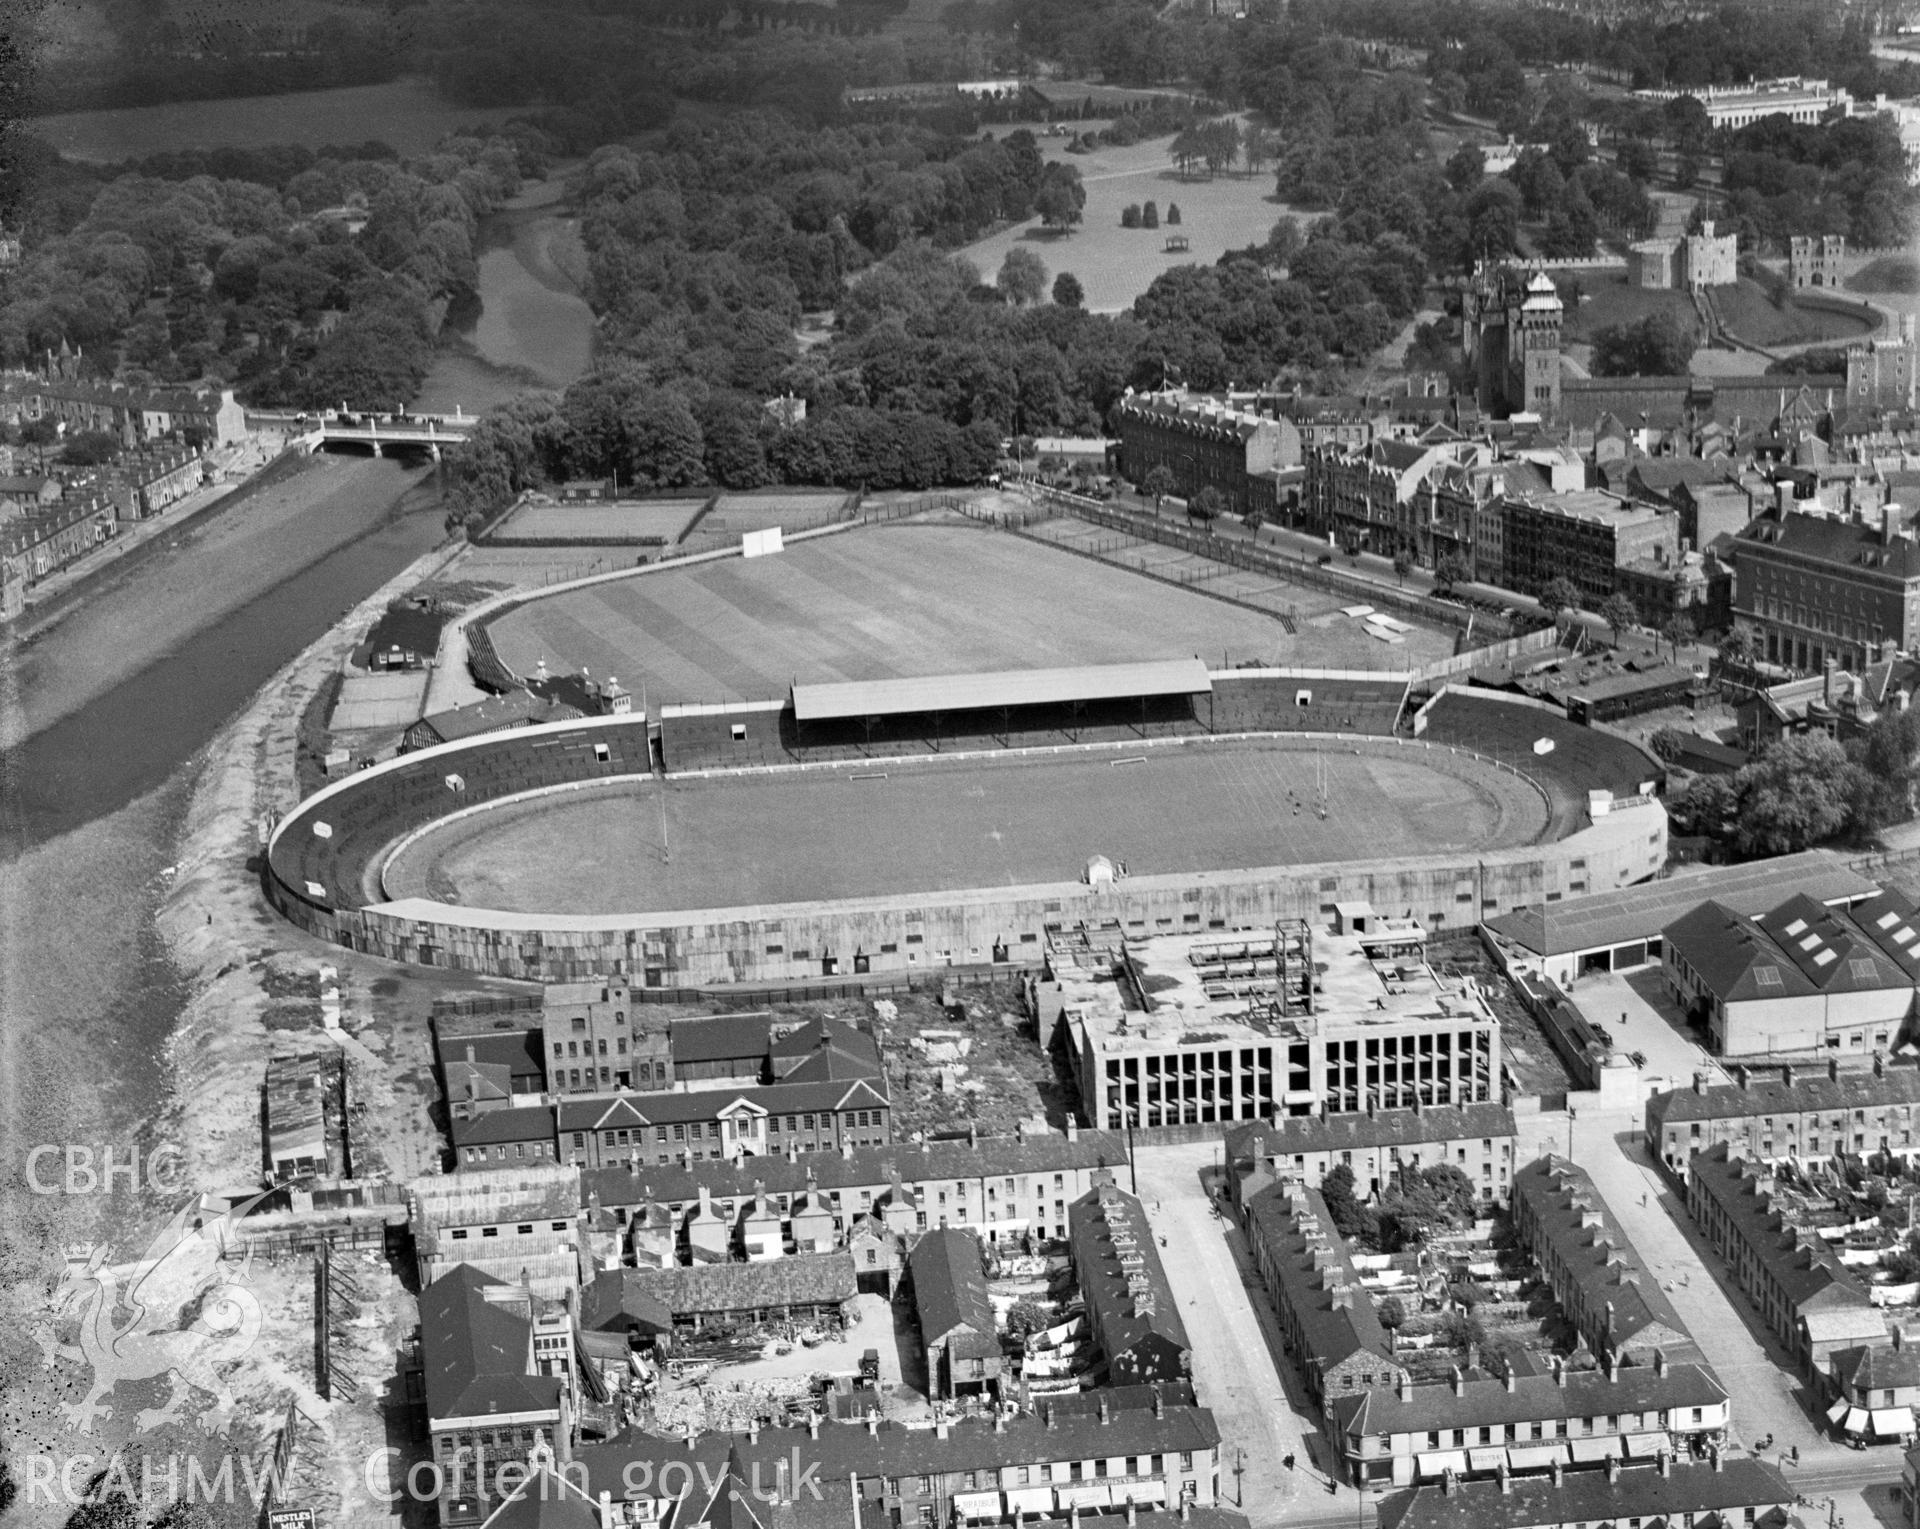 Digital copy of a black and white, oblique aerial photograph of Cardiff Arms Park, Cardiff. The photograph shows the view from the South East, showing Temperance Town in the foreground before its demolition by the Cardiff Corporation in 1937.